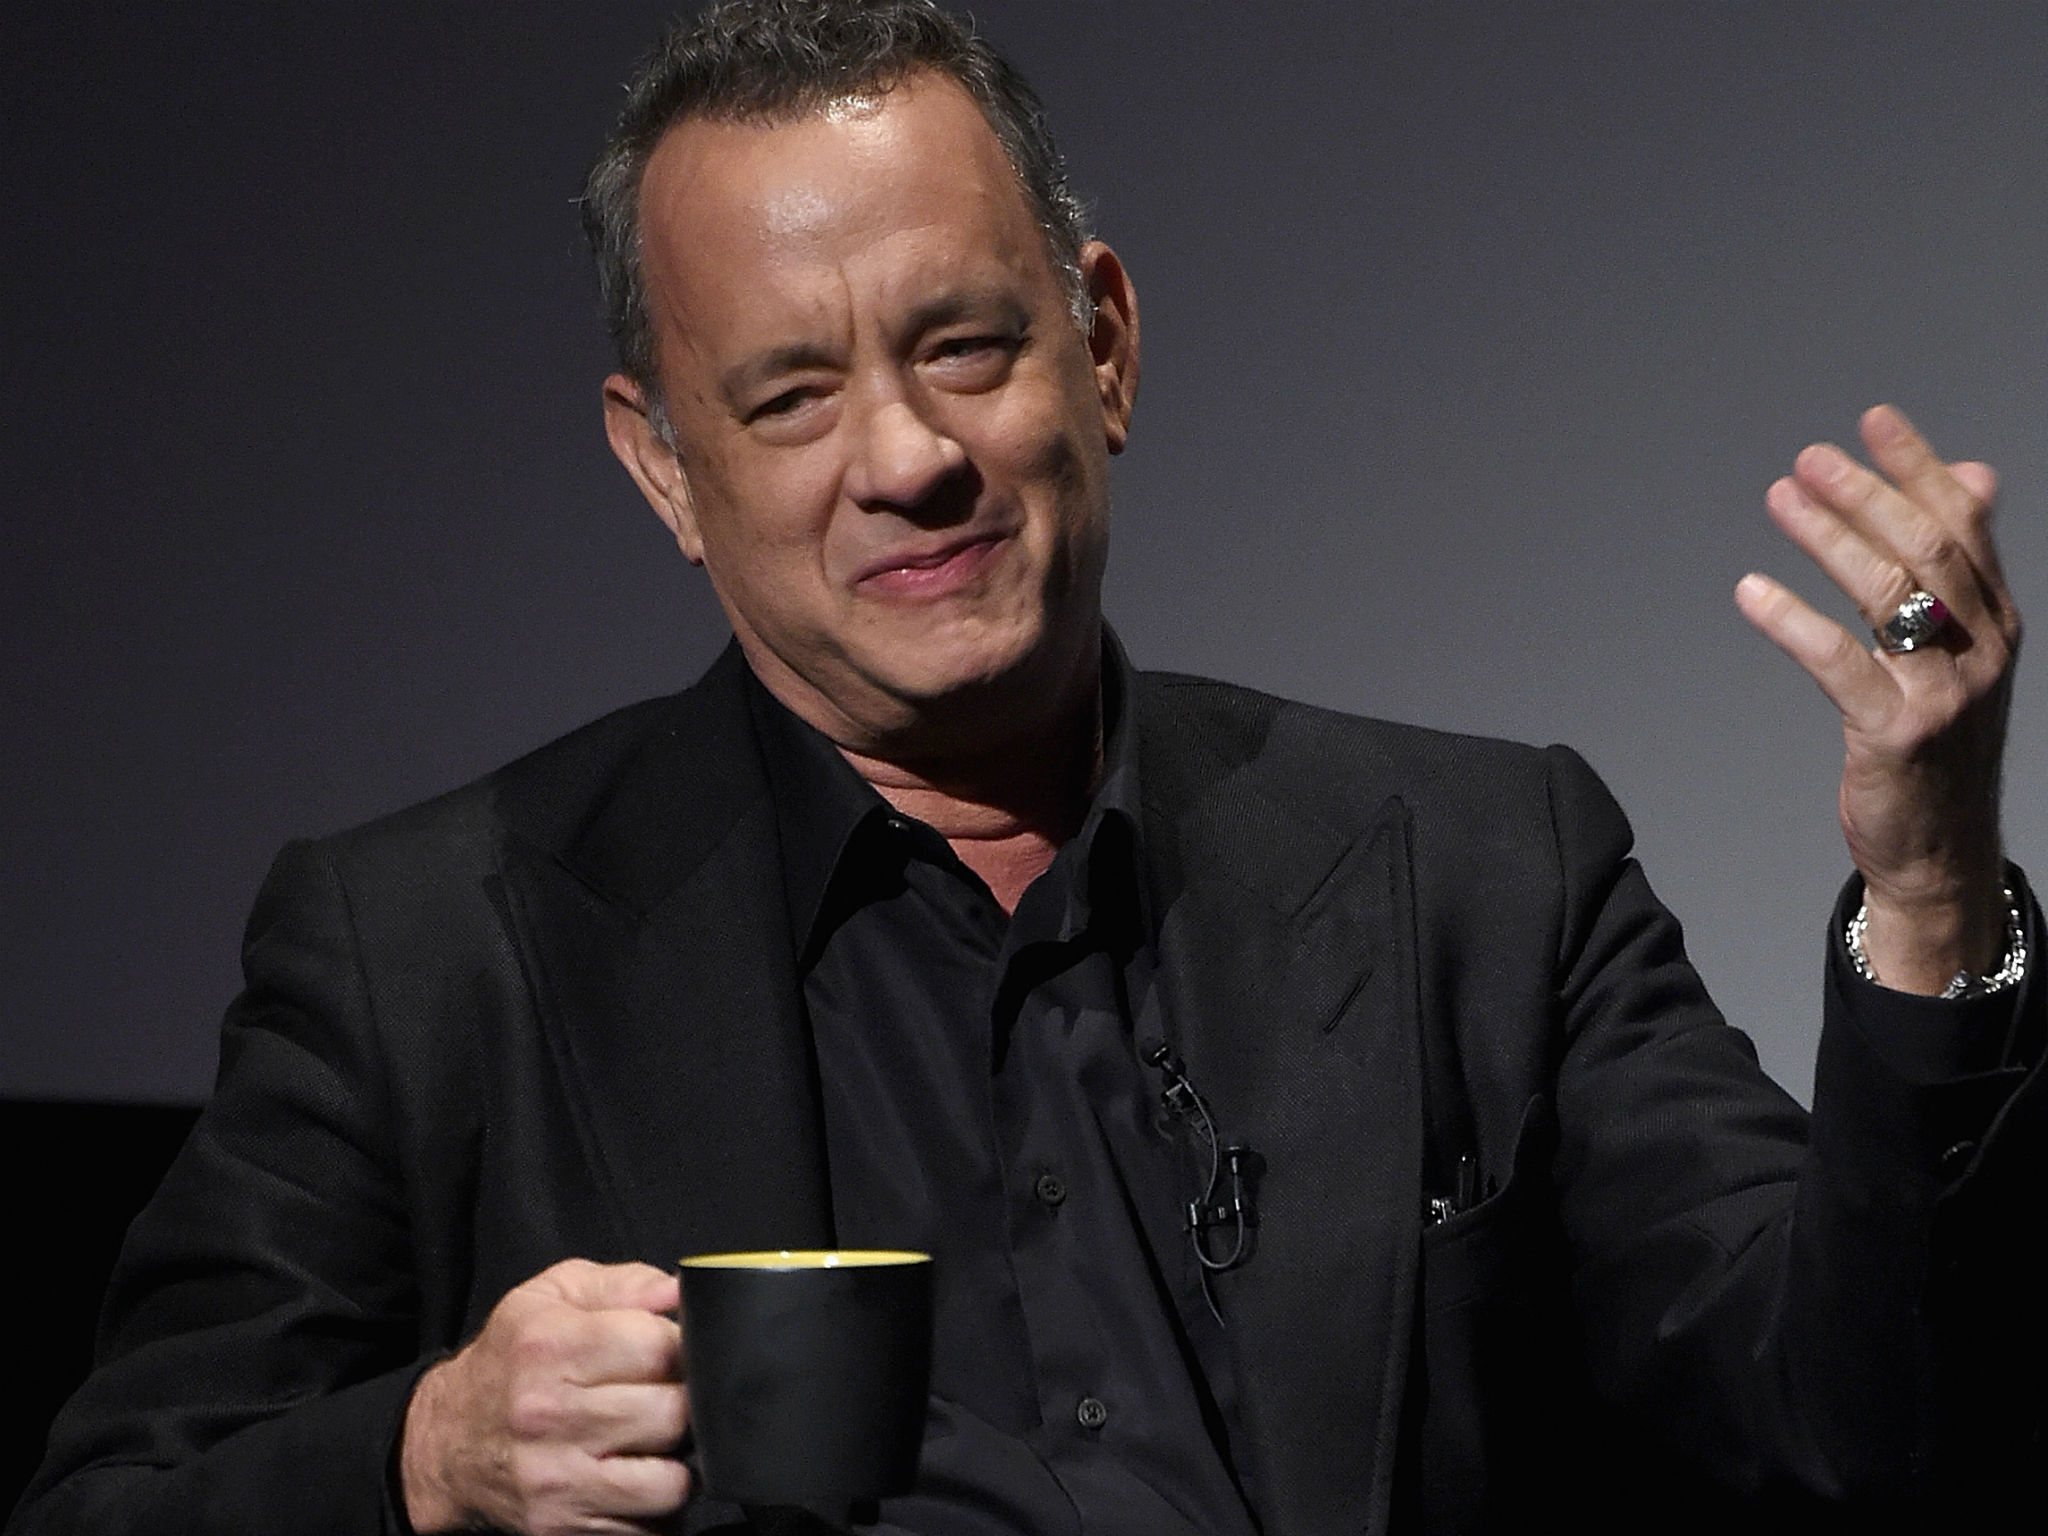 Tom Hanks Full hd wallpapers